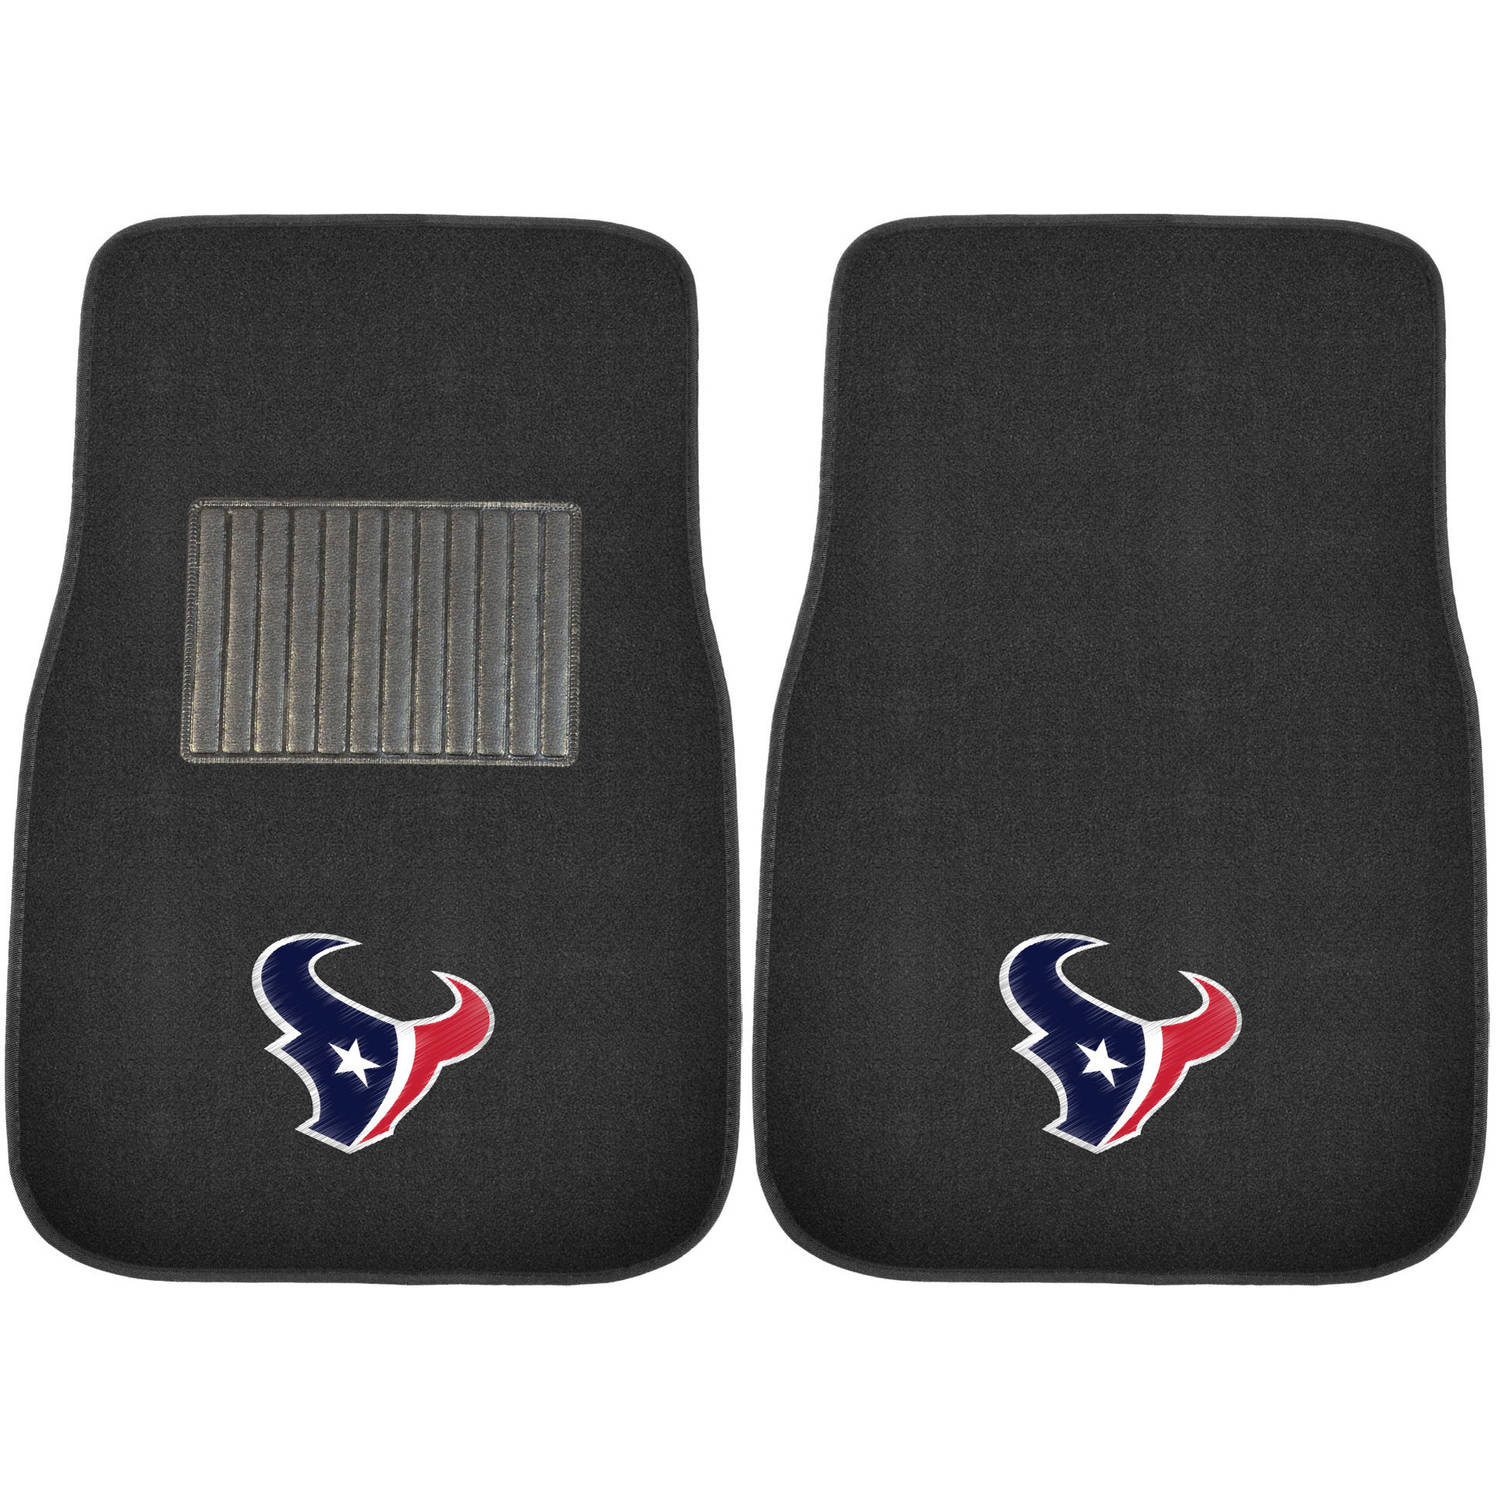 NFL Houston Texans Embroidered Car Mats